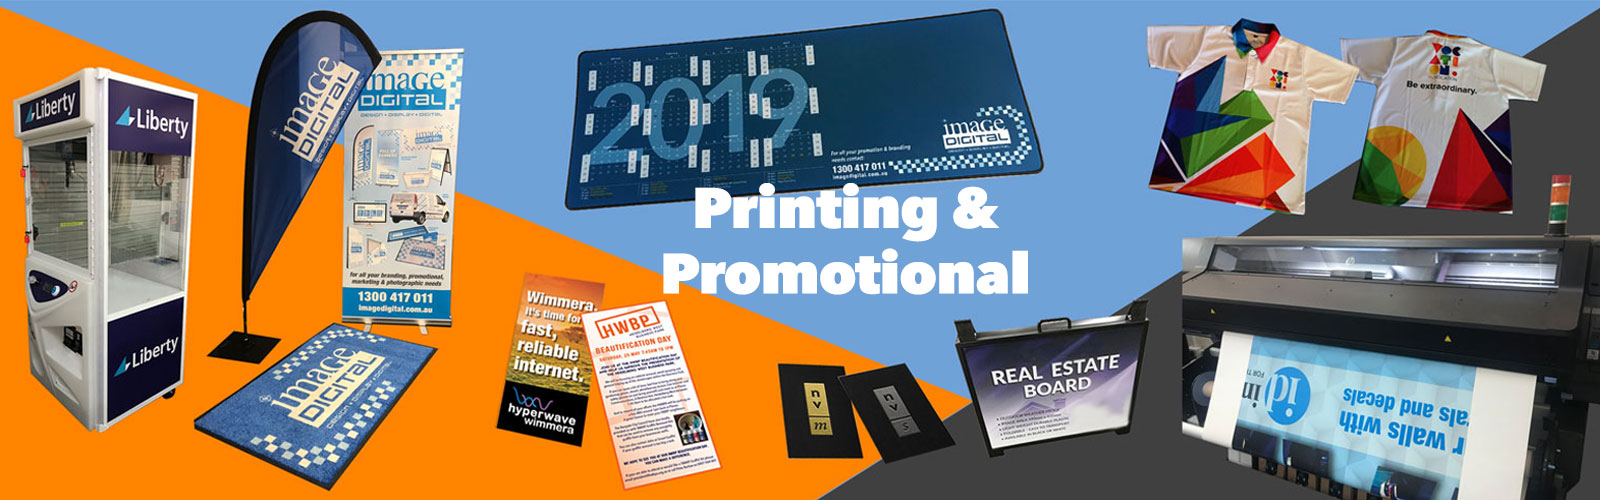 Printing & Promotional Products @ Image Digital